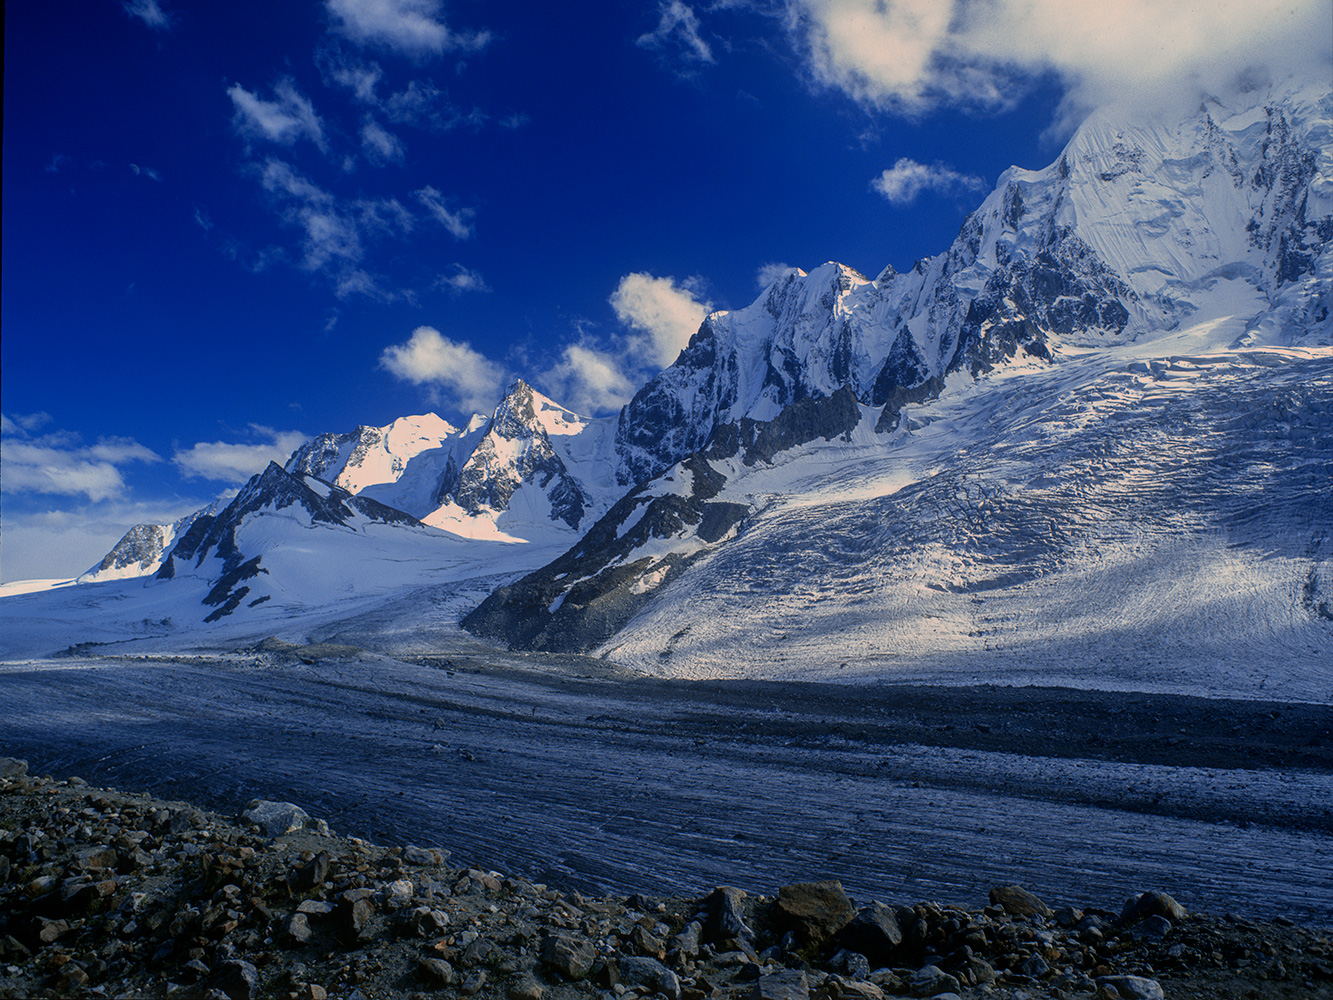 A view south towards the Darkot Pass from a base camp at 4100mBronica ETRS, 50mm, Fuji RDP